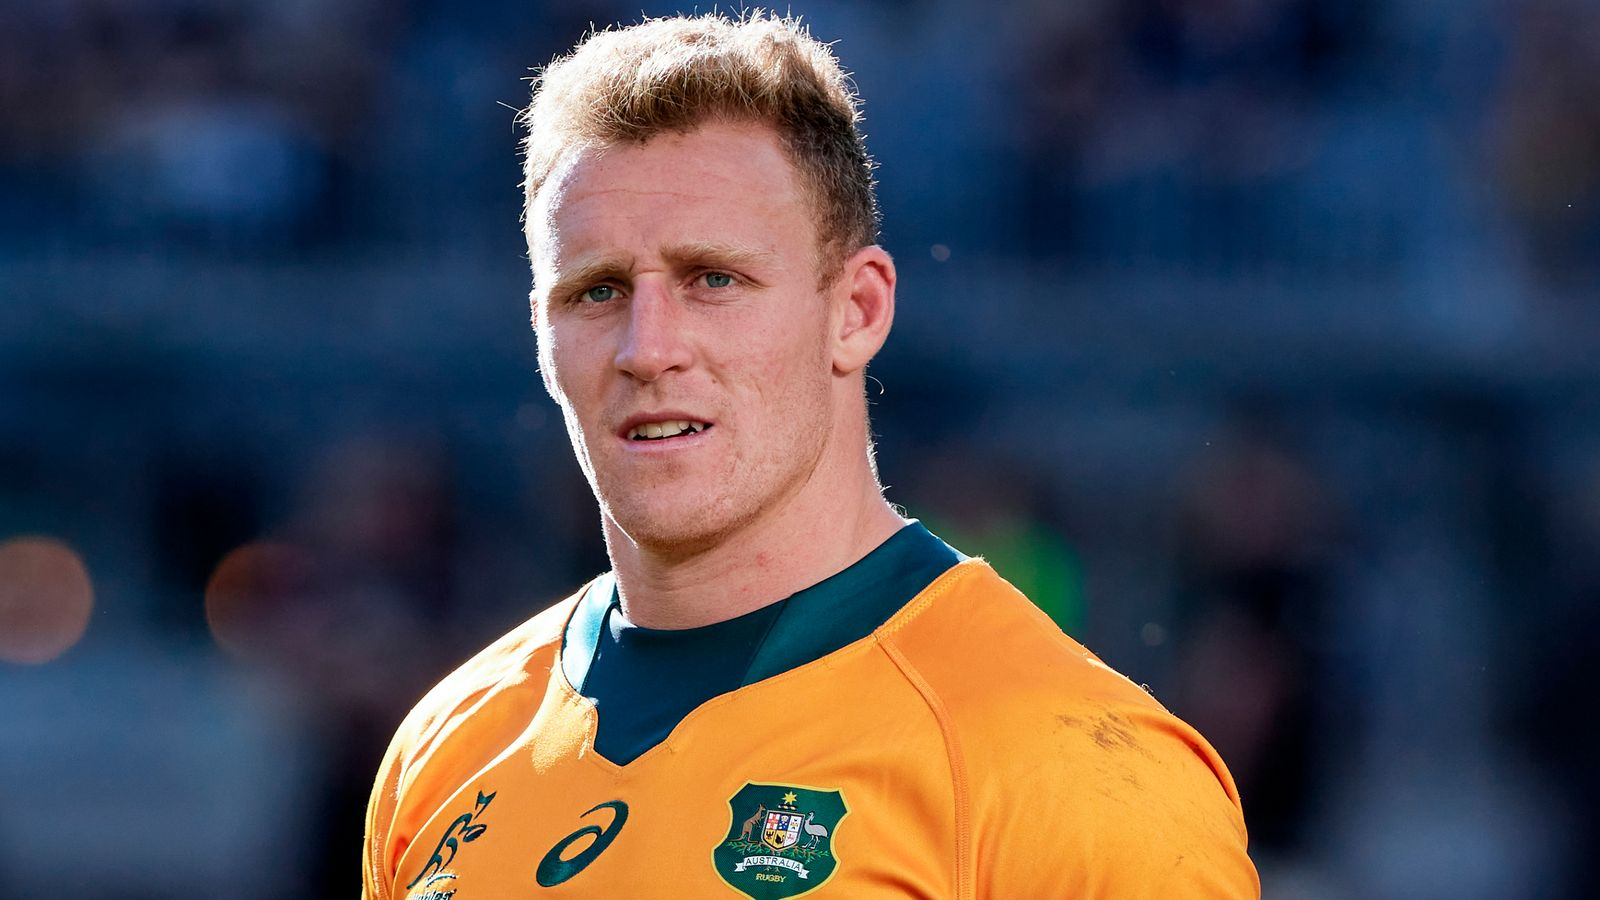 Hodge in to start for Wallabies; O'Connor back on bench